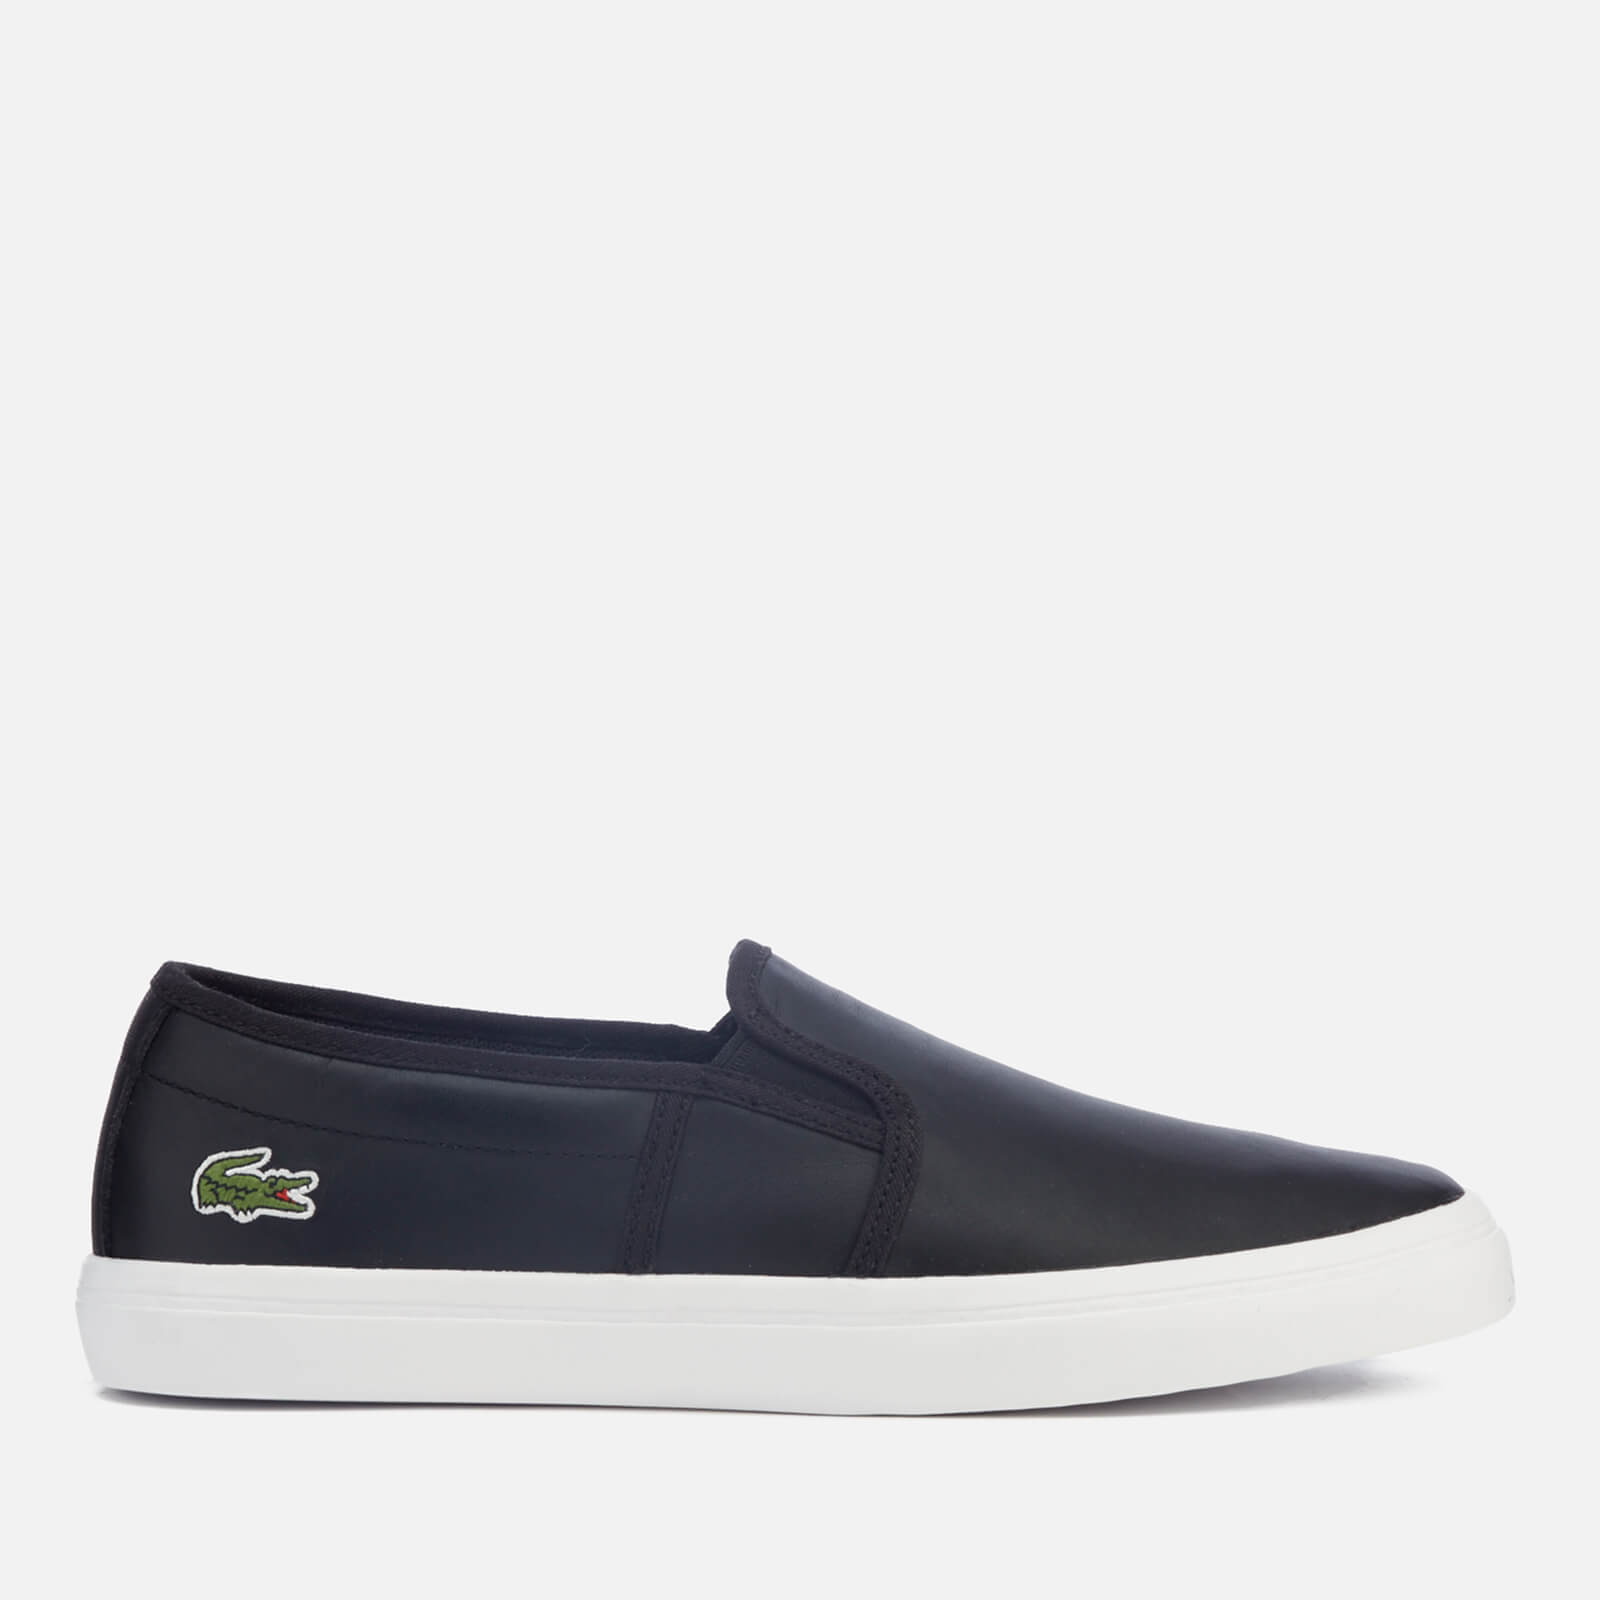 65cd0bdacbf Lacoste Women s Gazon Bl 1 Leather Slip-On Trainers - Black